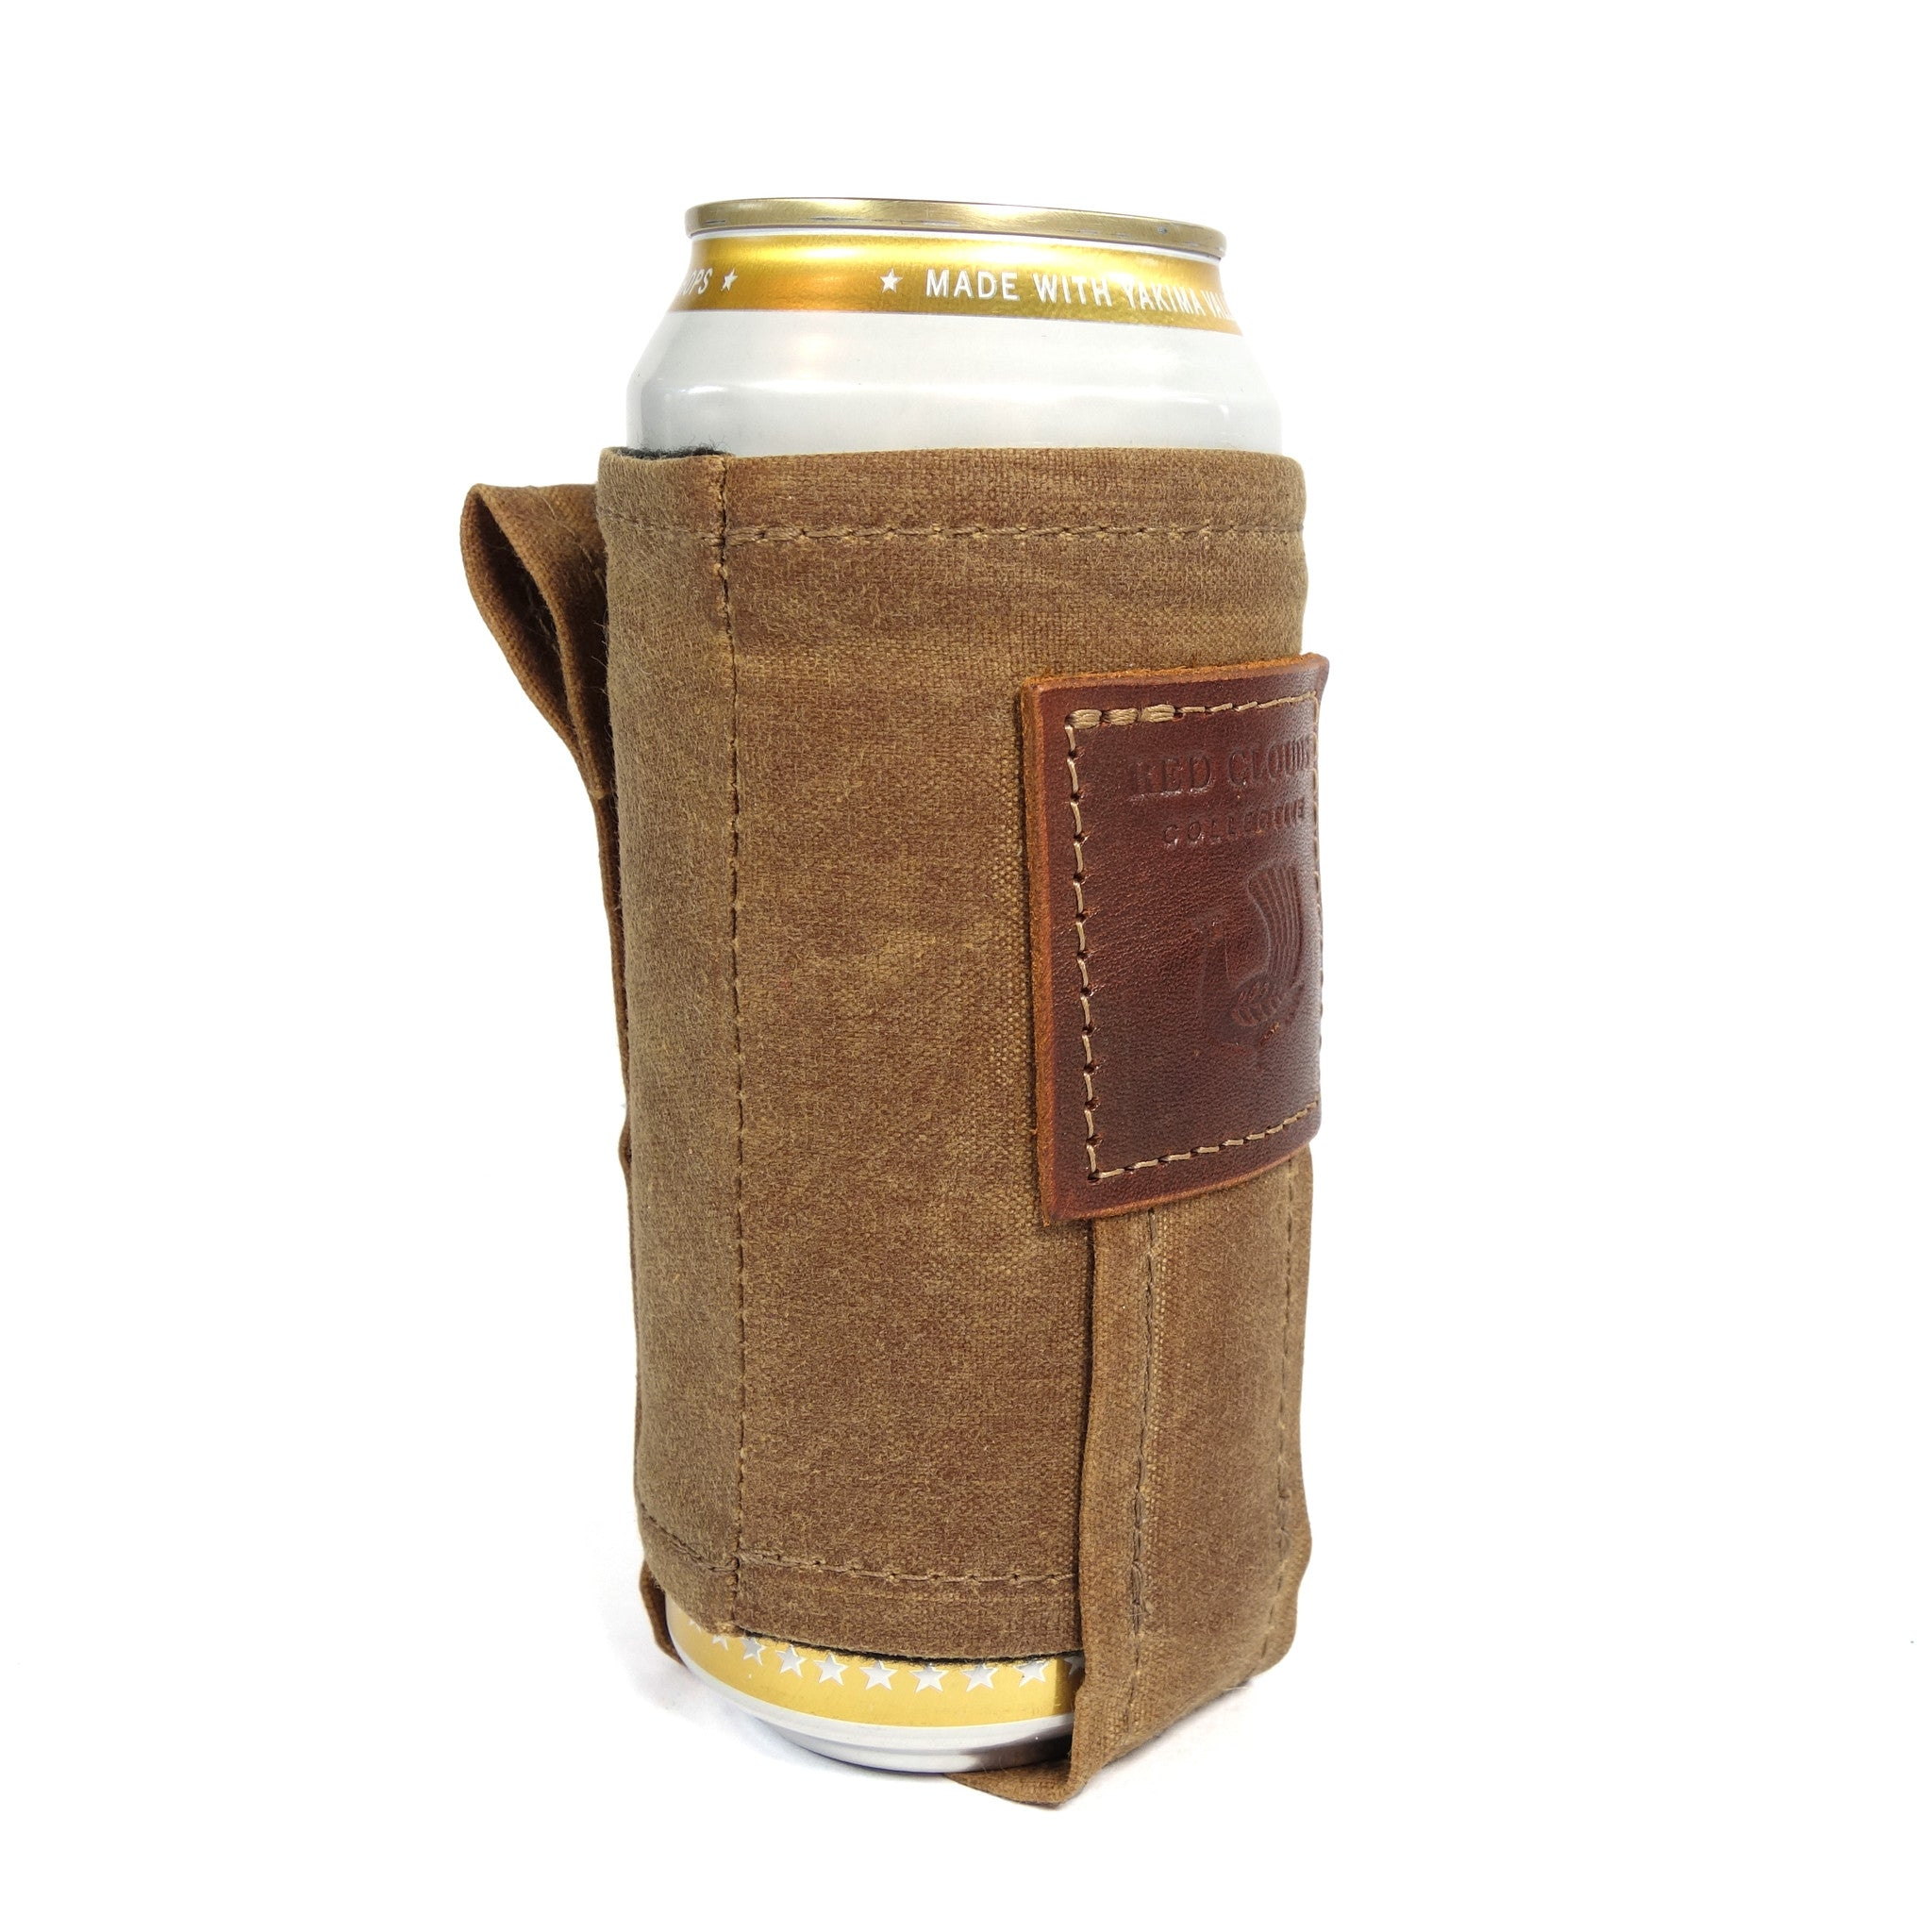 Magnetic Koozie, waxed canvas koozie, leather koozie, rare earth magnets, beer koozie, tallboy koozie, red clouds koozie, This is not your normal koozie. It uses very strong, rare earth magnets to hold the weight of your full beverage attached to the fridge, stove, your car or any other metal surface while you are working or playing. A clever back loop also lets you attach a string and wear the koozie around your neck.